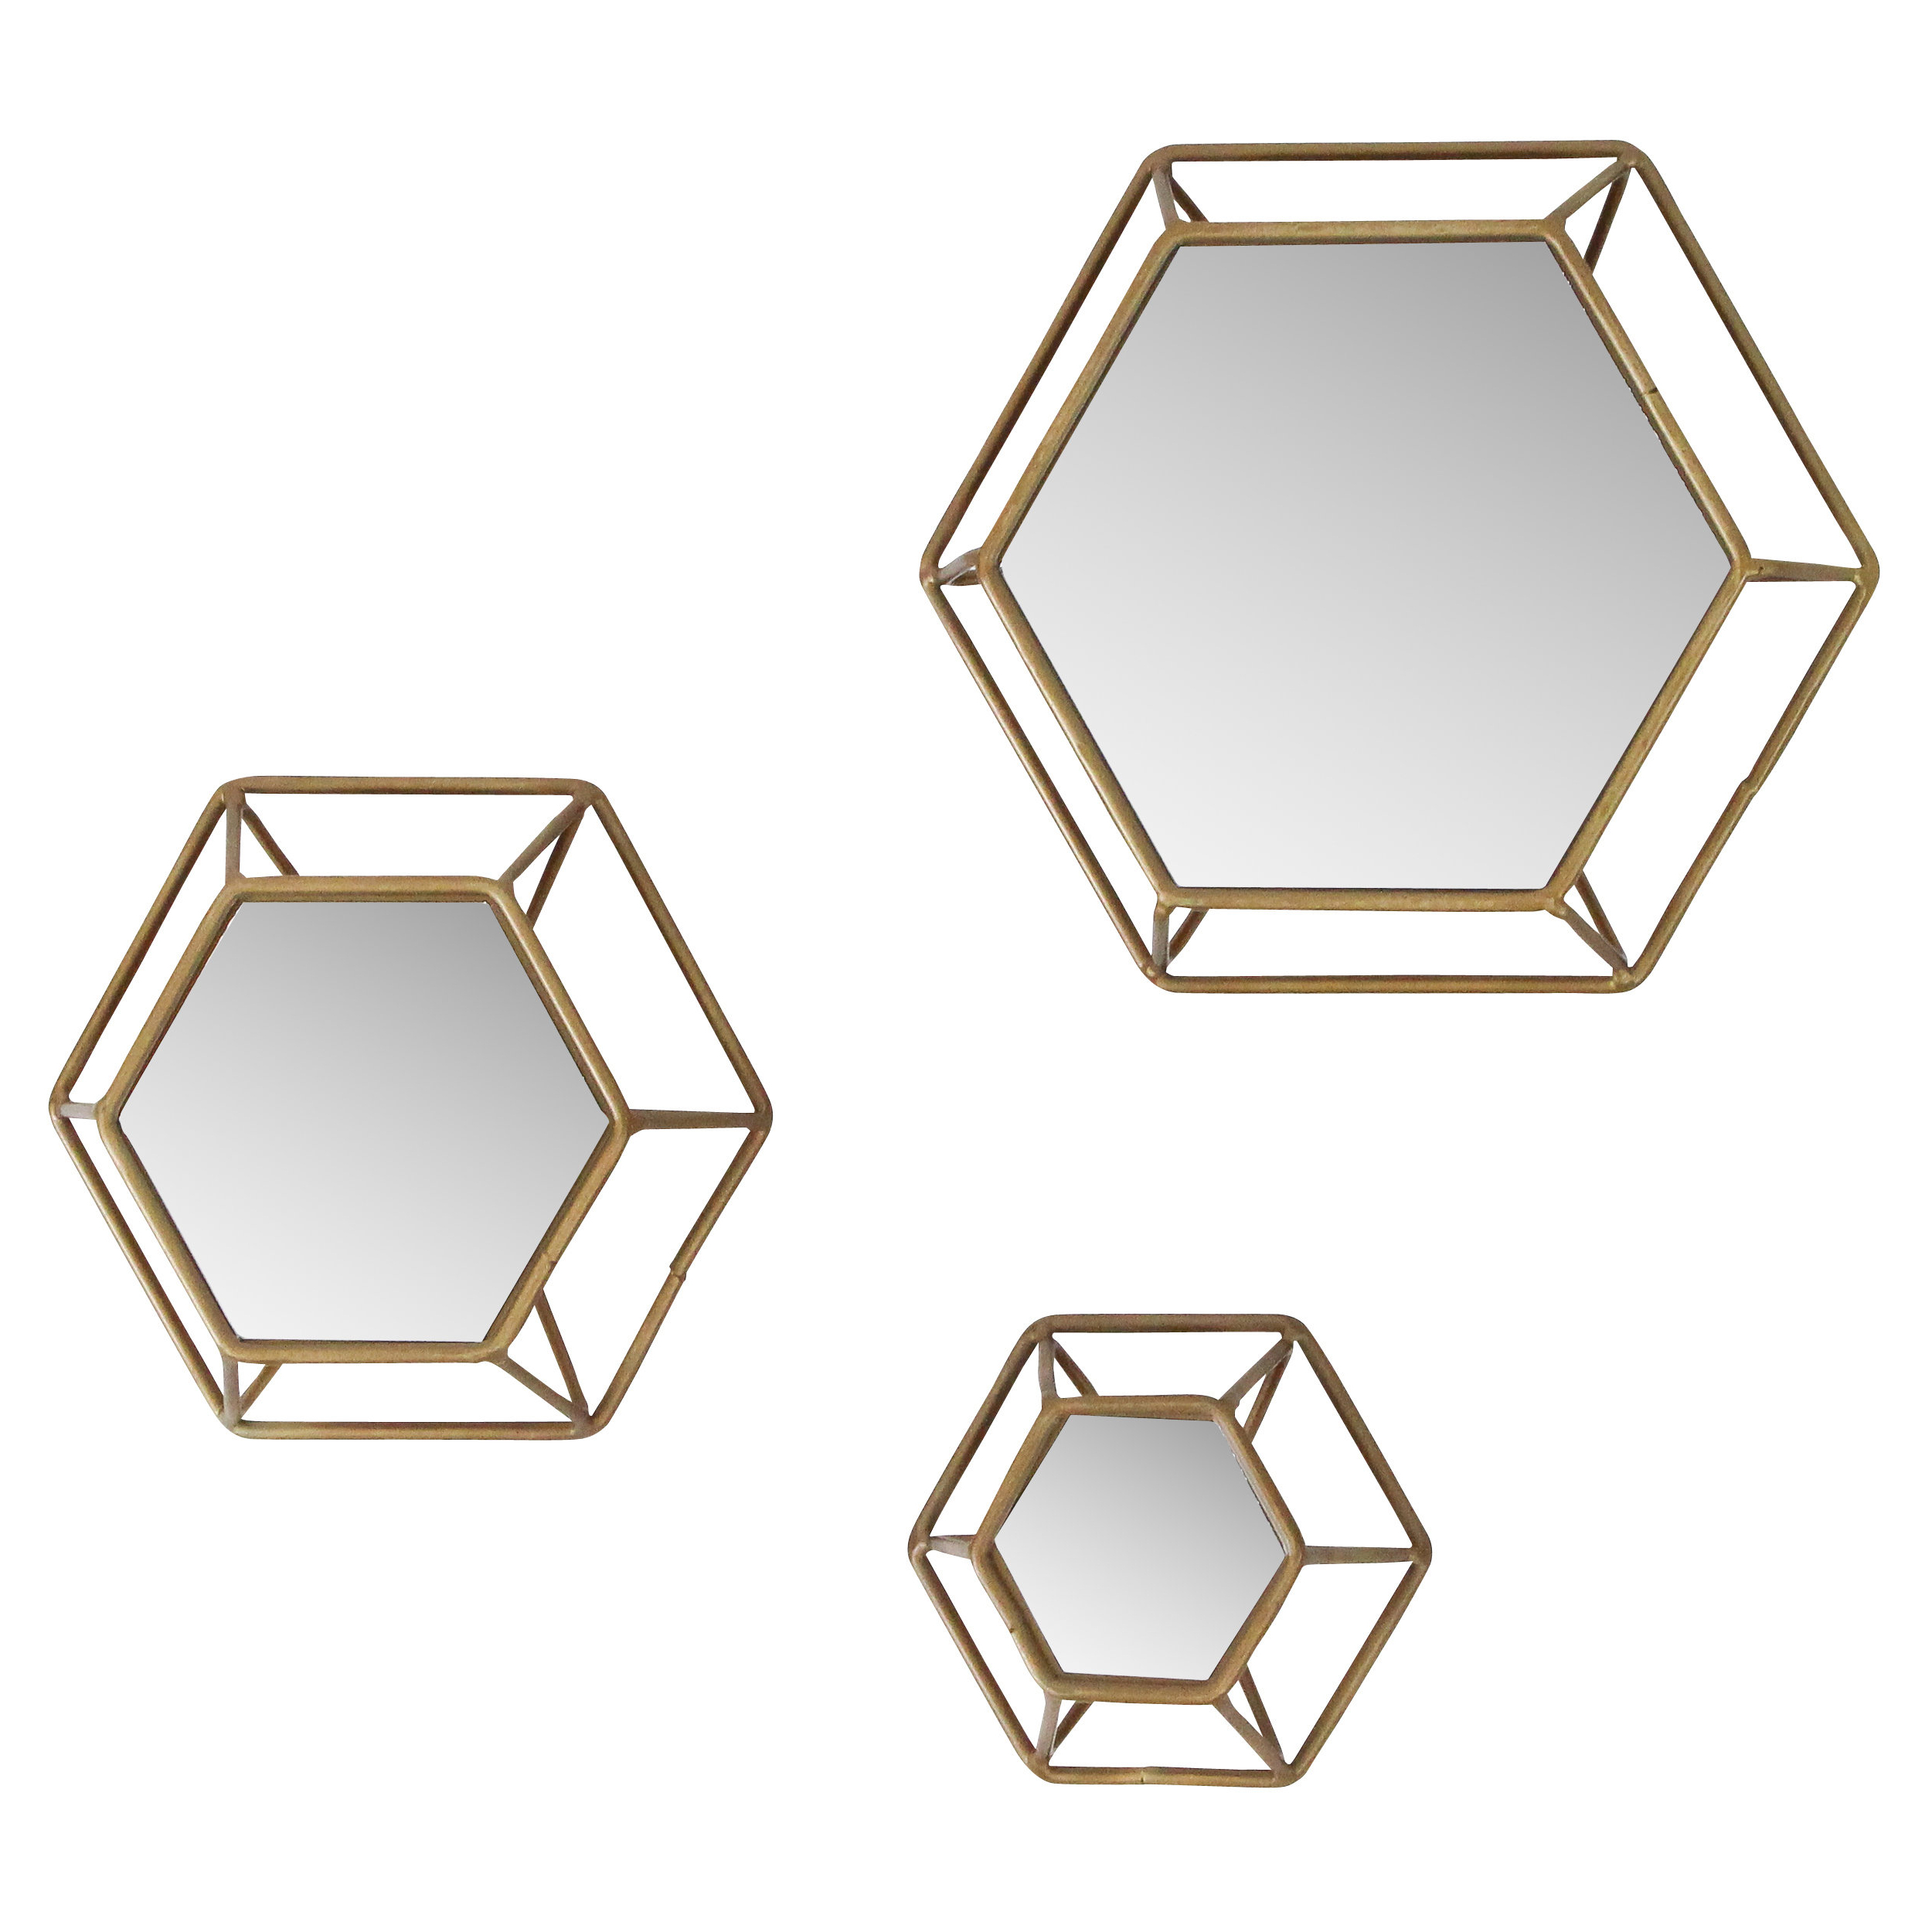 Yahoue 3 Piece Hexagonal Wall Mirror Set For Recent 3 Piece Dima Hanging Modern & Contemporary Mirror Sets (View 8 of 20)